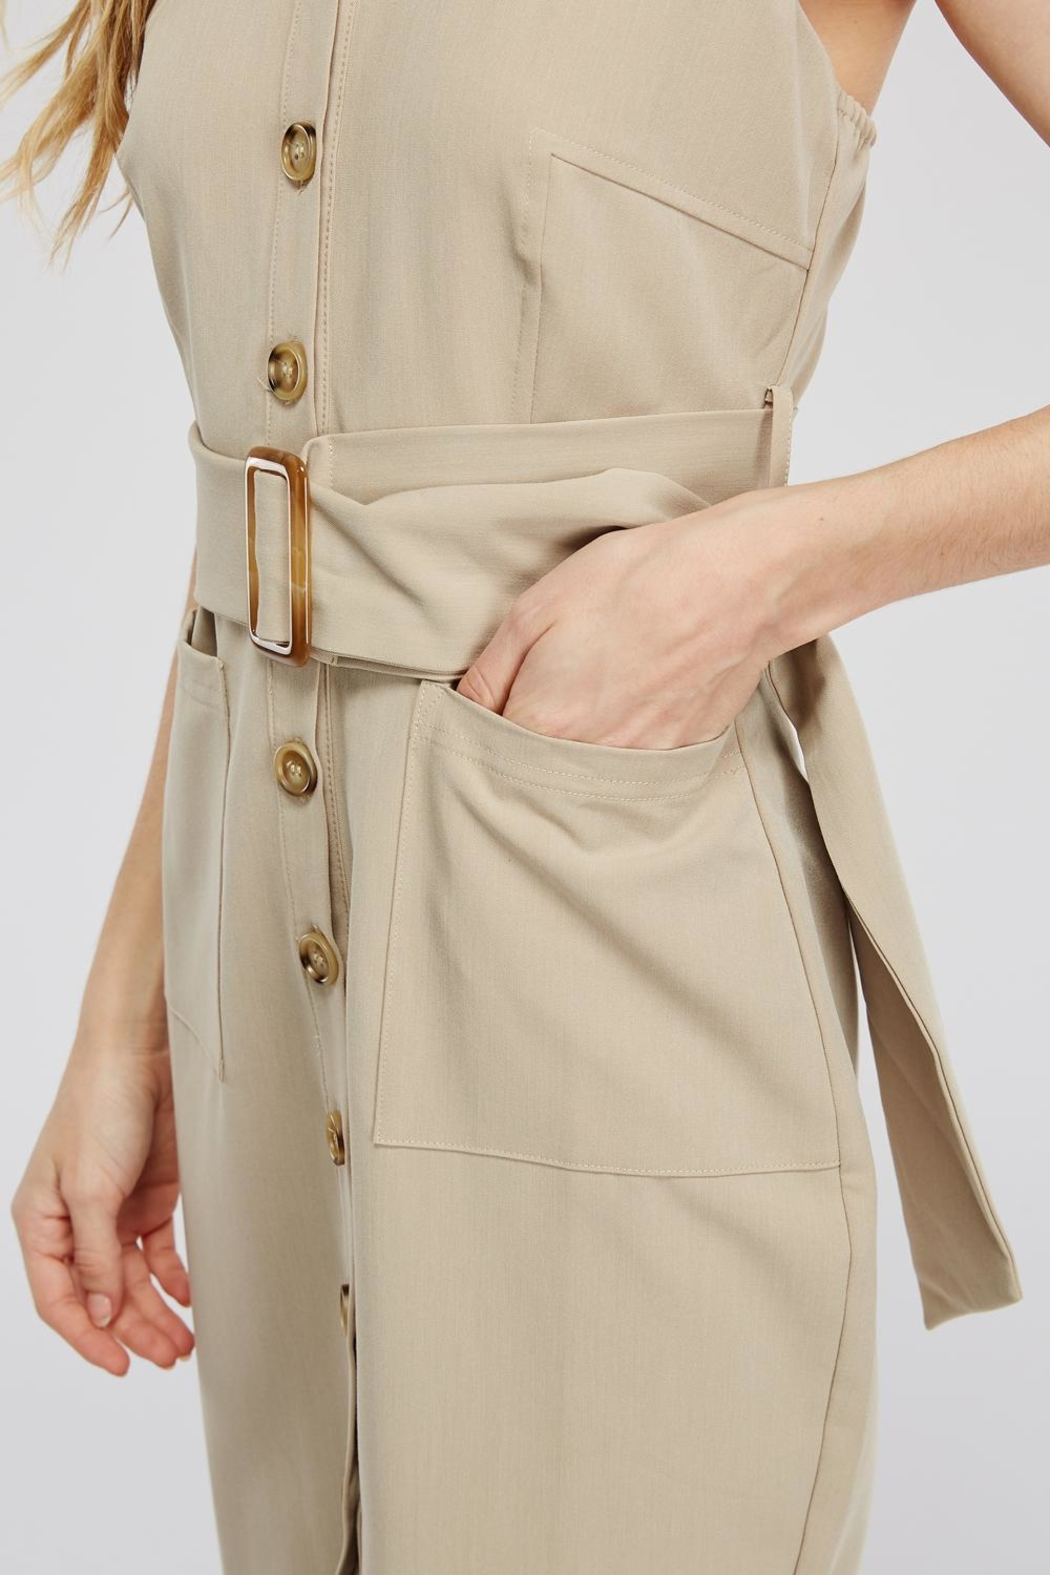 Main Strip Button-Up Belted Dress - Back Cropped Image